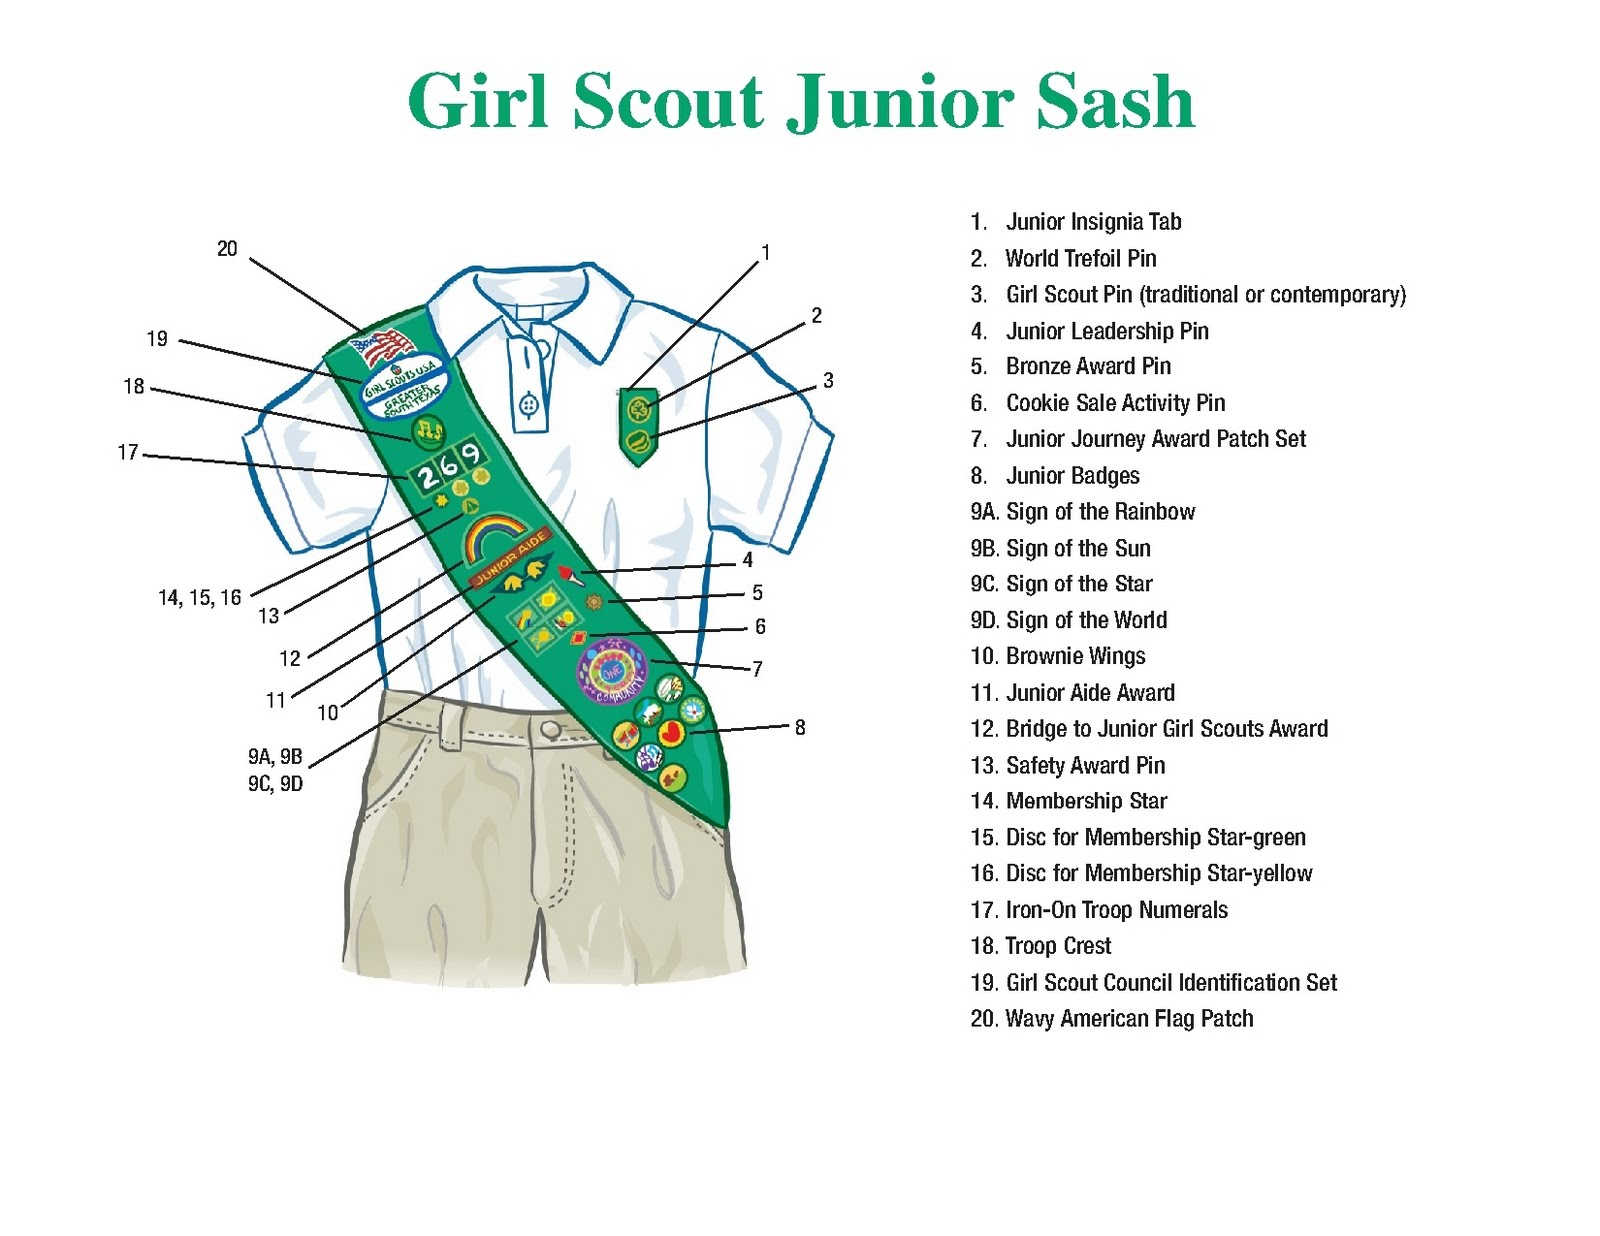 Junior girl scout sash patch placement